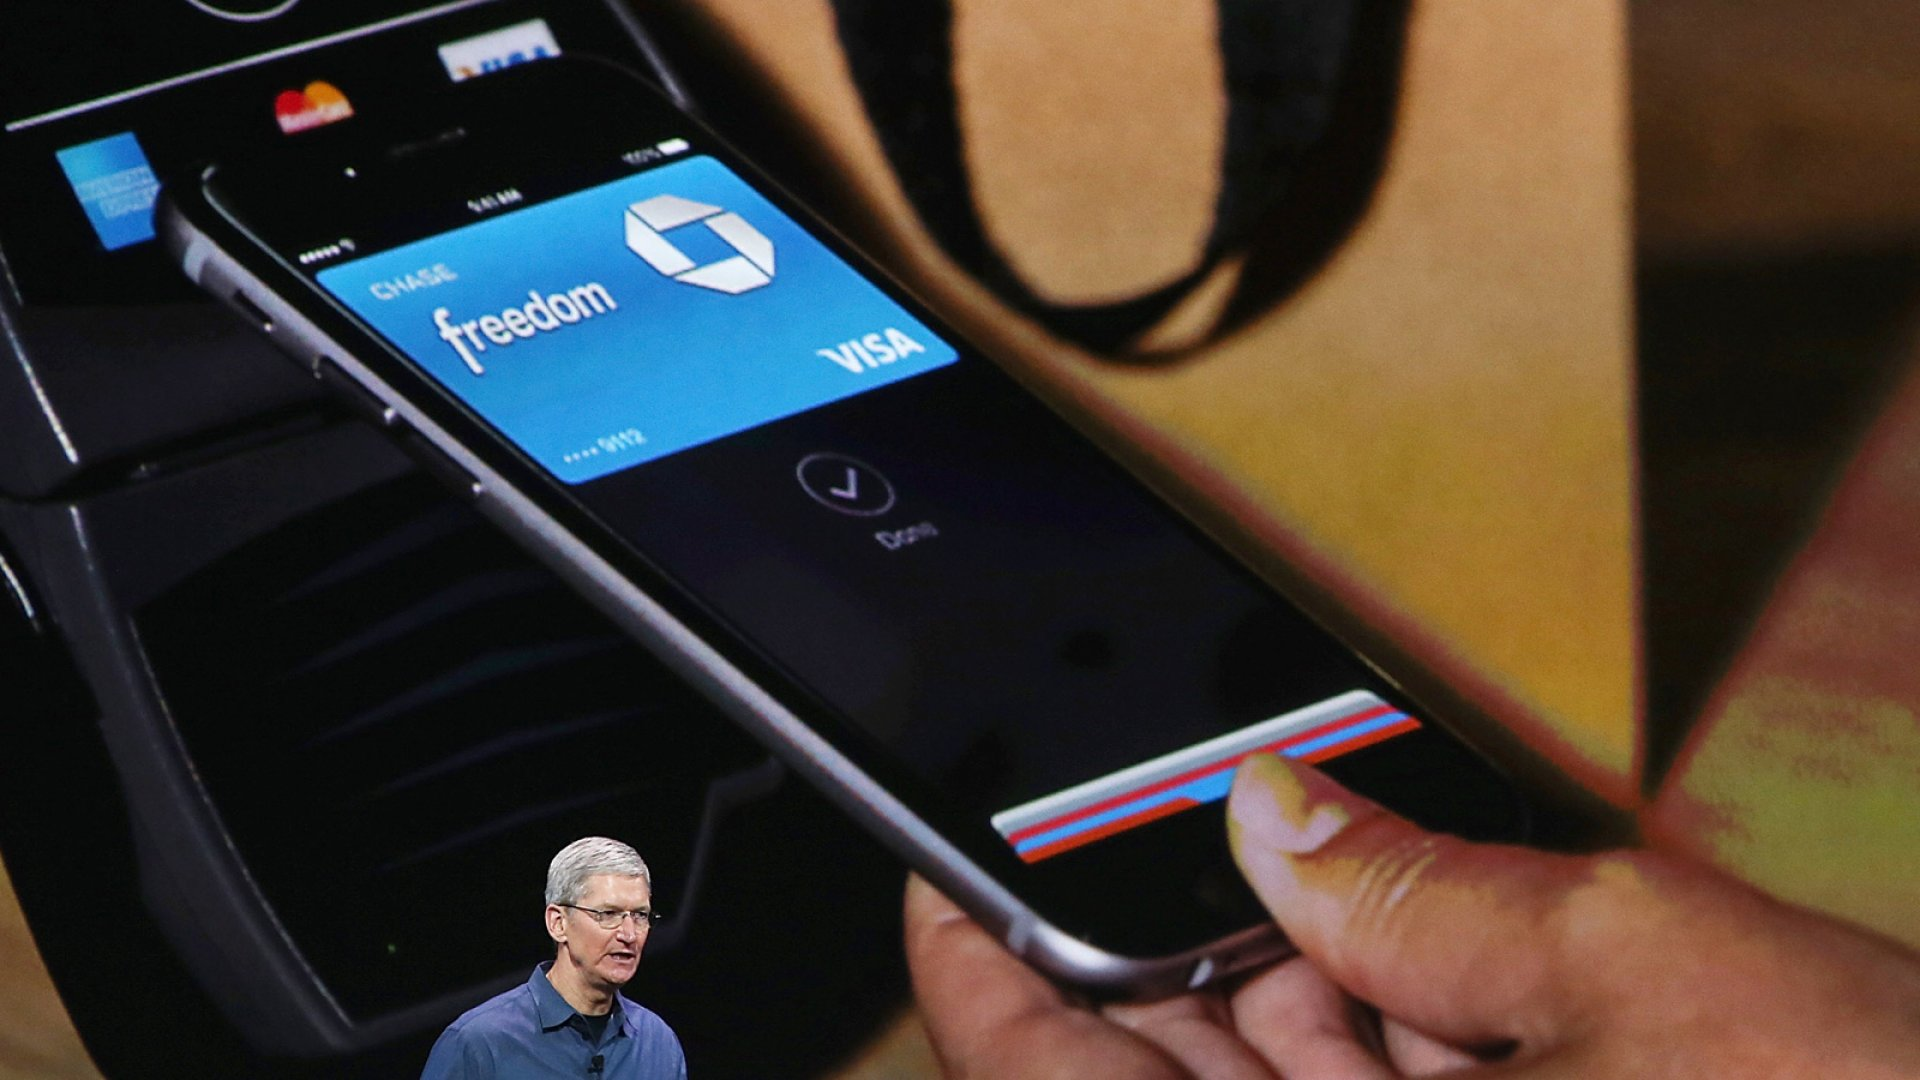 Will Apple Pay 'Forever Change the Way We Pay for Things'?